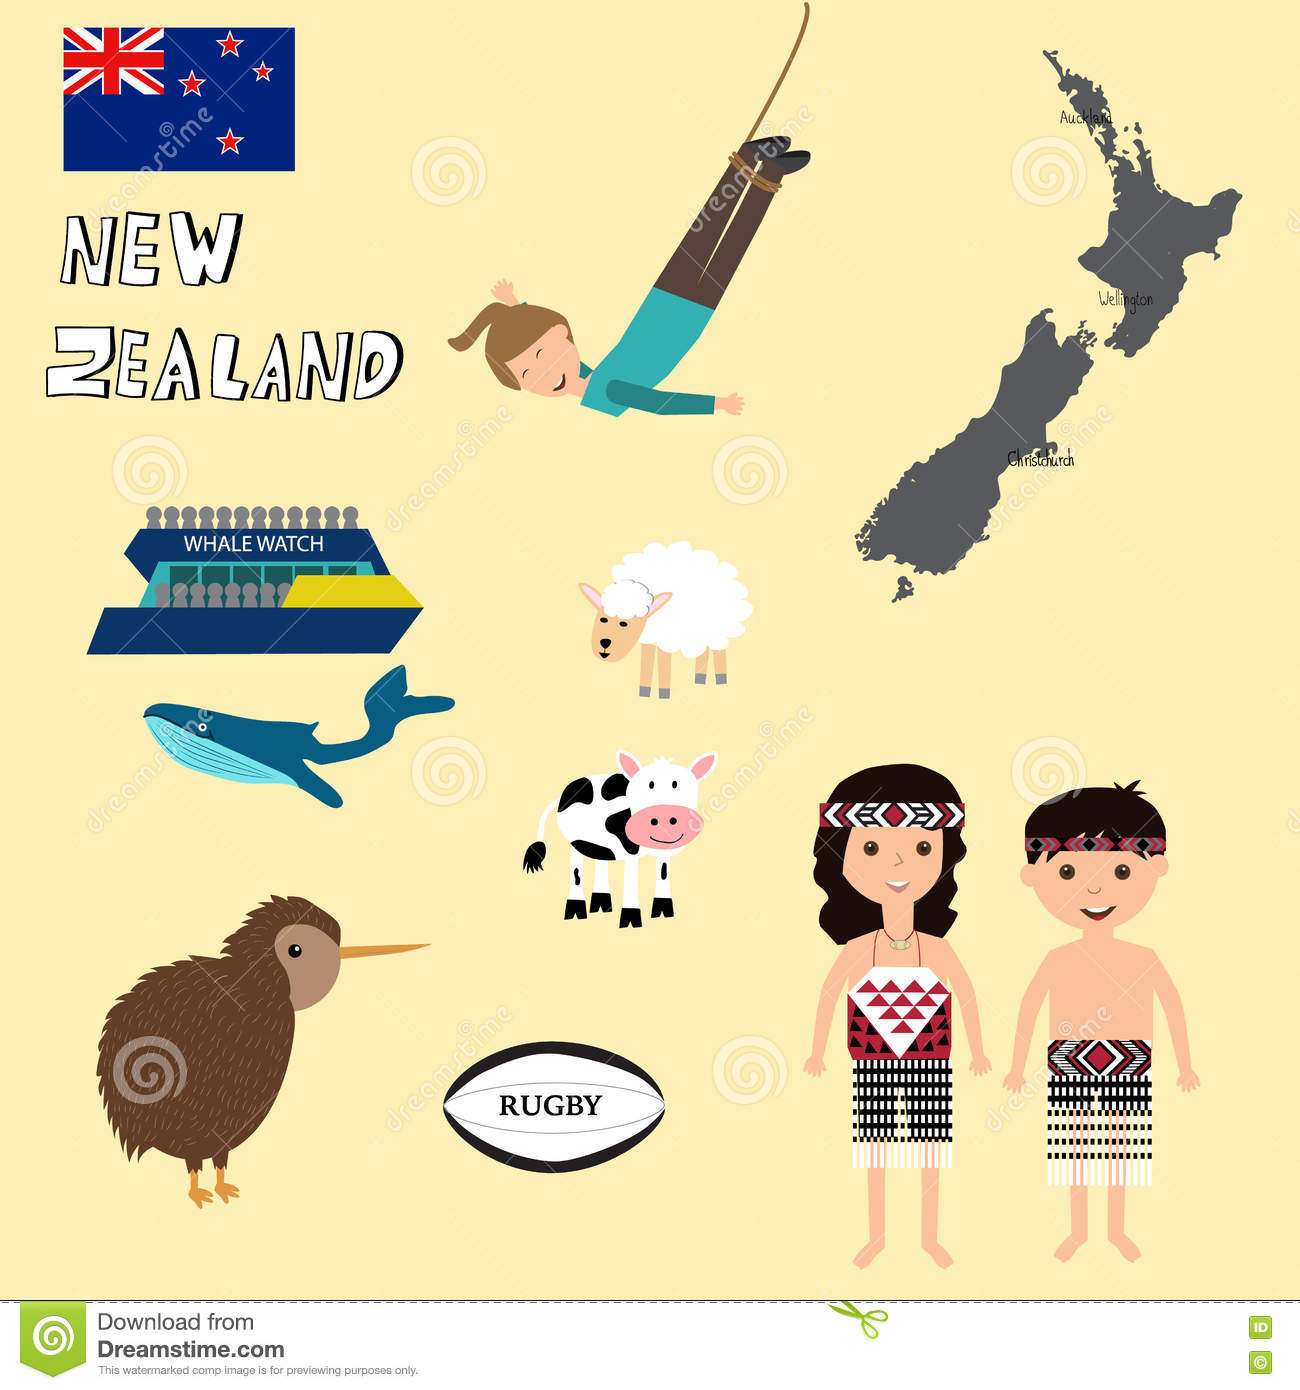 Travel New Zealand With Mapwhale Watchingbungy Jumping – New Zealand Travel Map